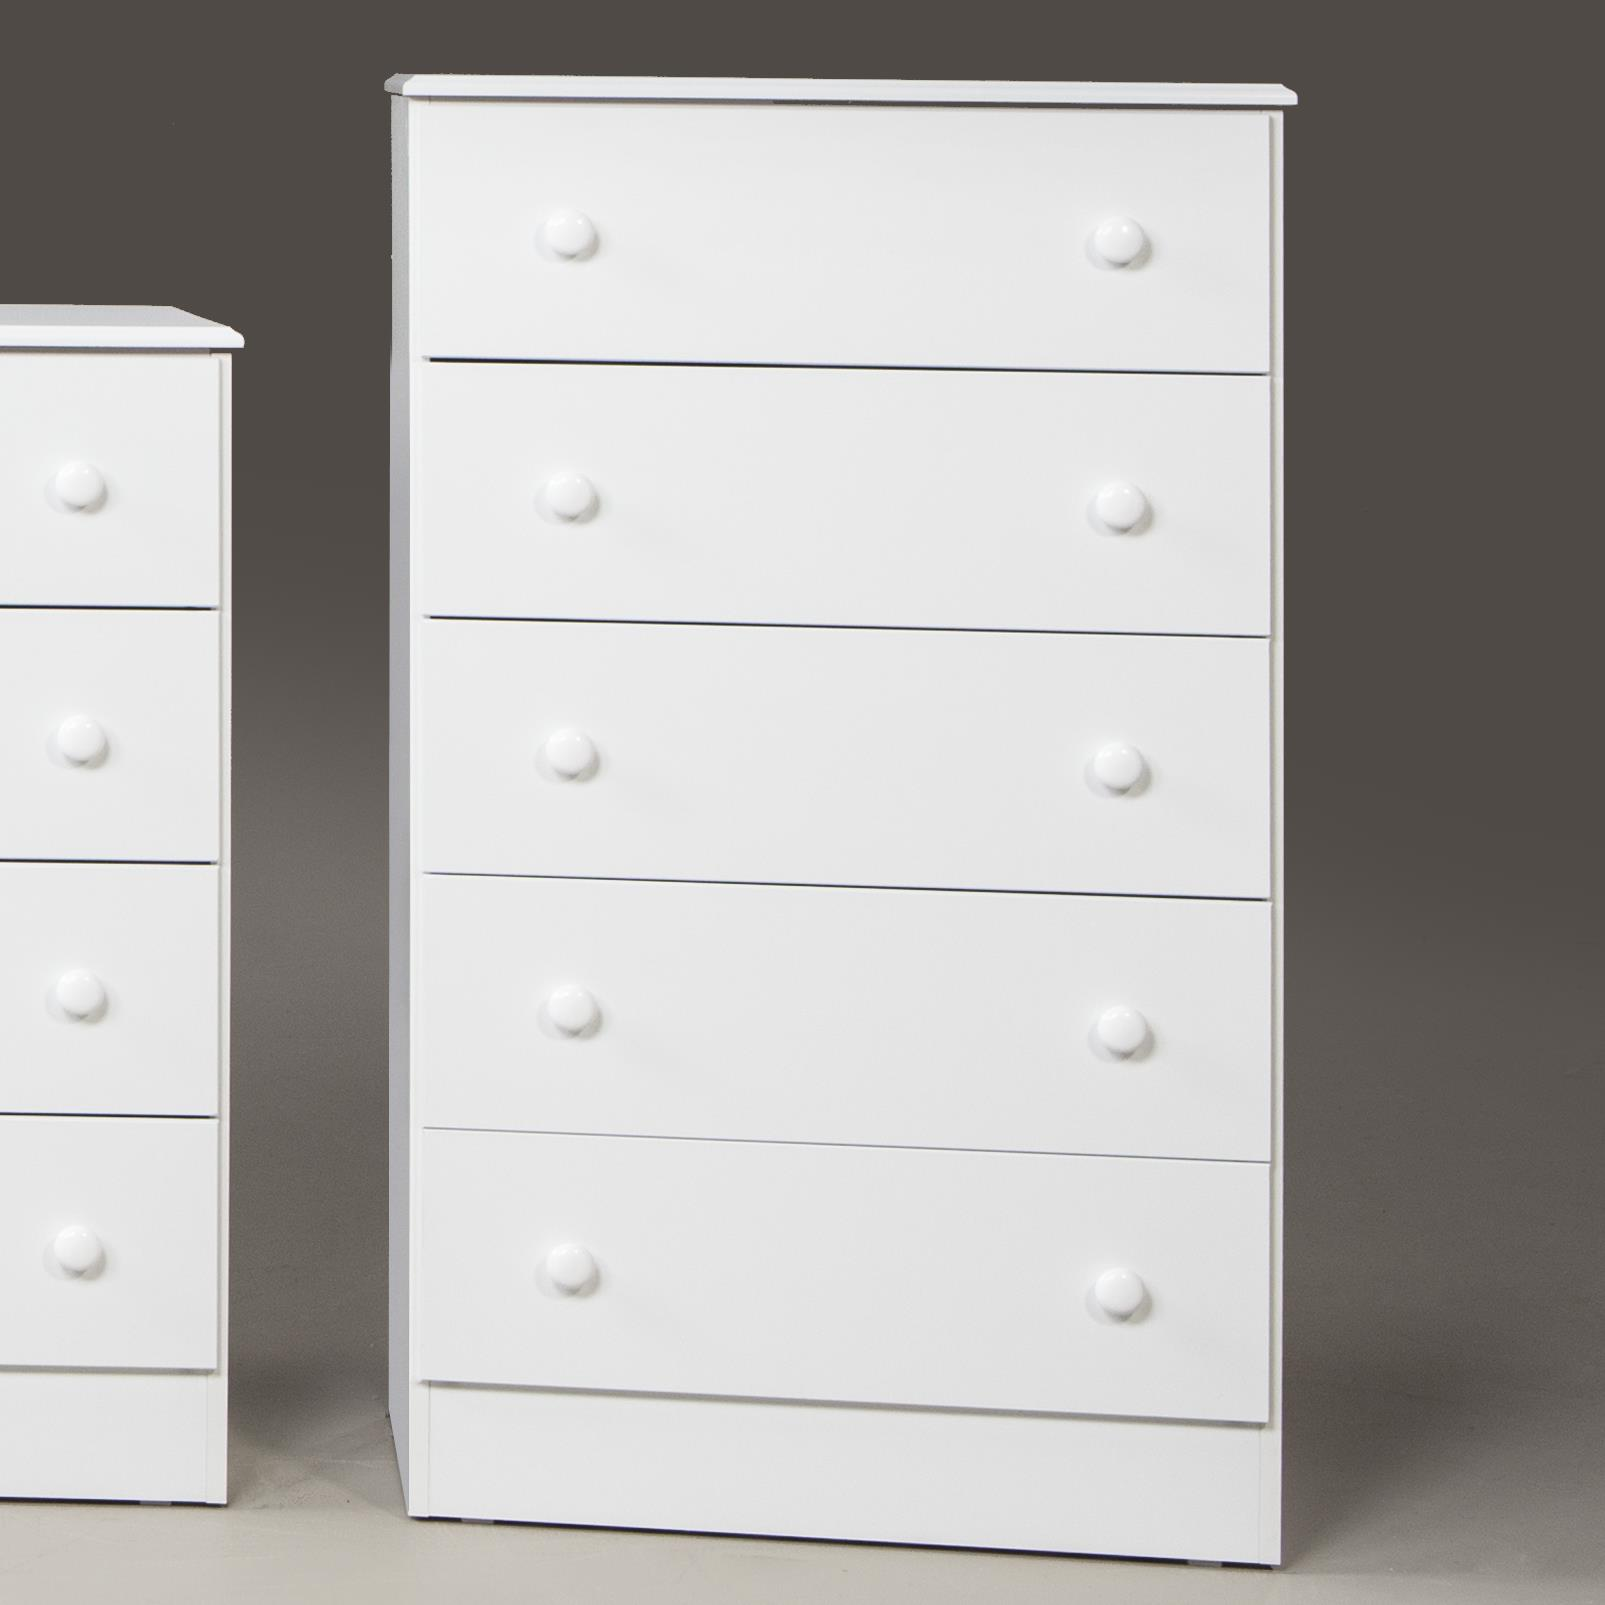 193 White 5 Drawer Chest by Kith Furniture at Wayside Furniture